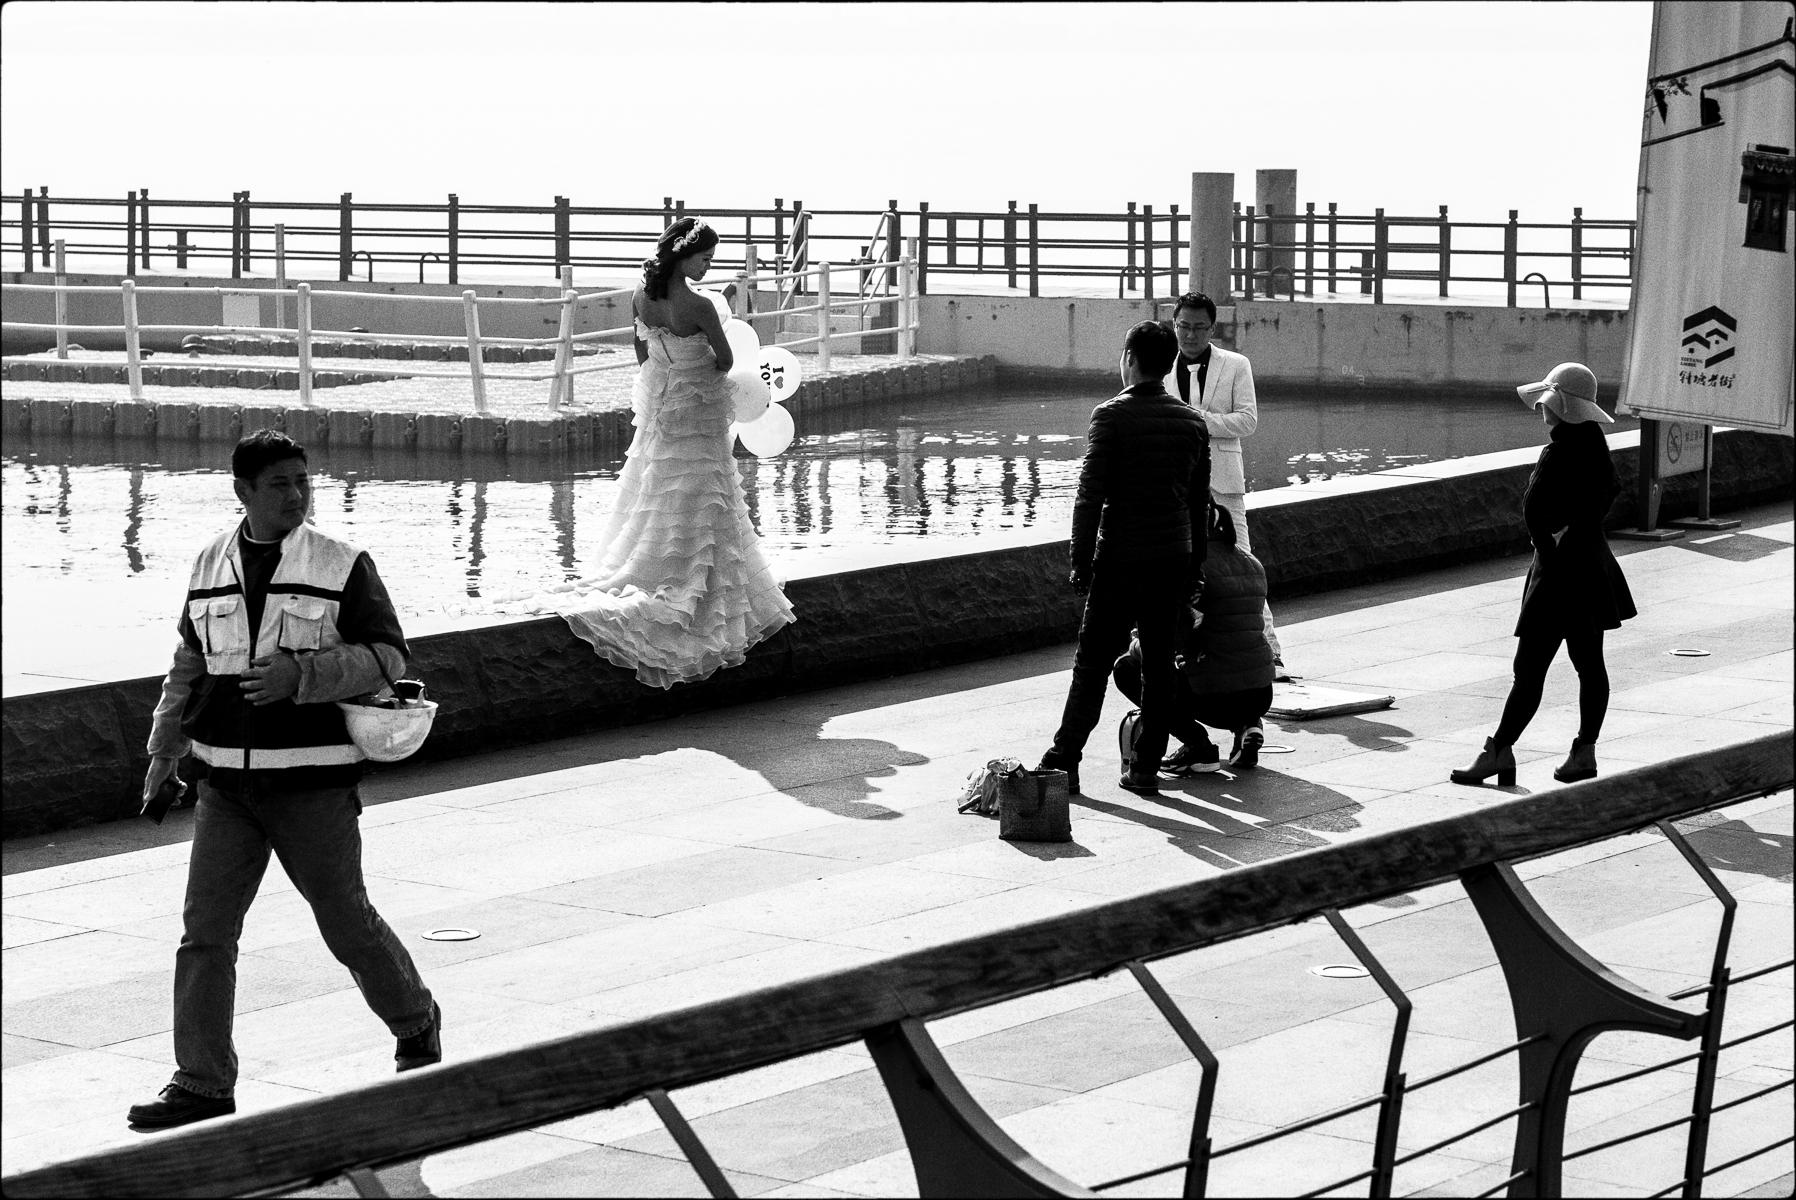 Wedding Photography, Suzhou : street & stories : TIMOTHY FLOYD PHOTOGRAPHER, NATURE PHOTOGRAPHY, PHOTO ESSAYS, PHOTOJOURNALISM